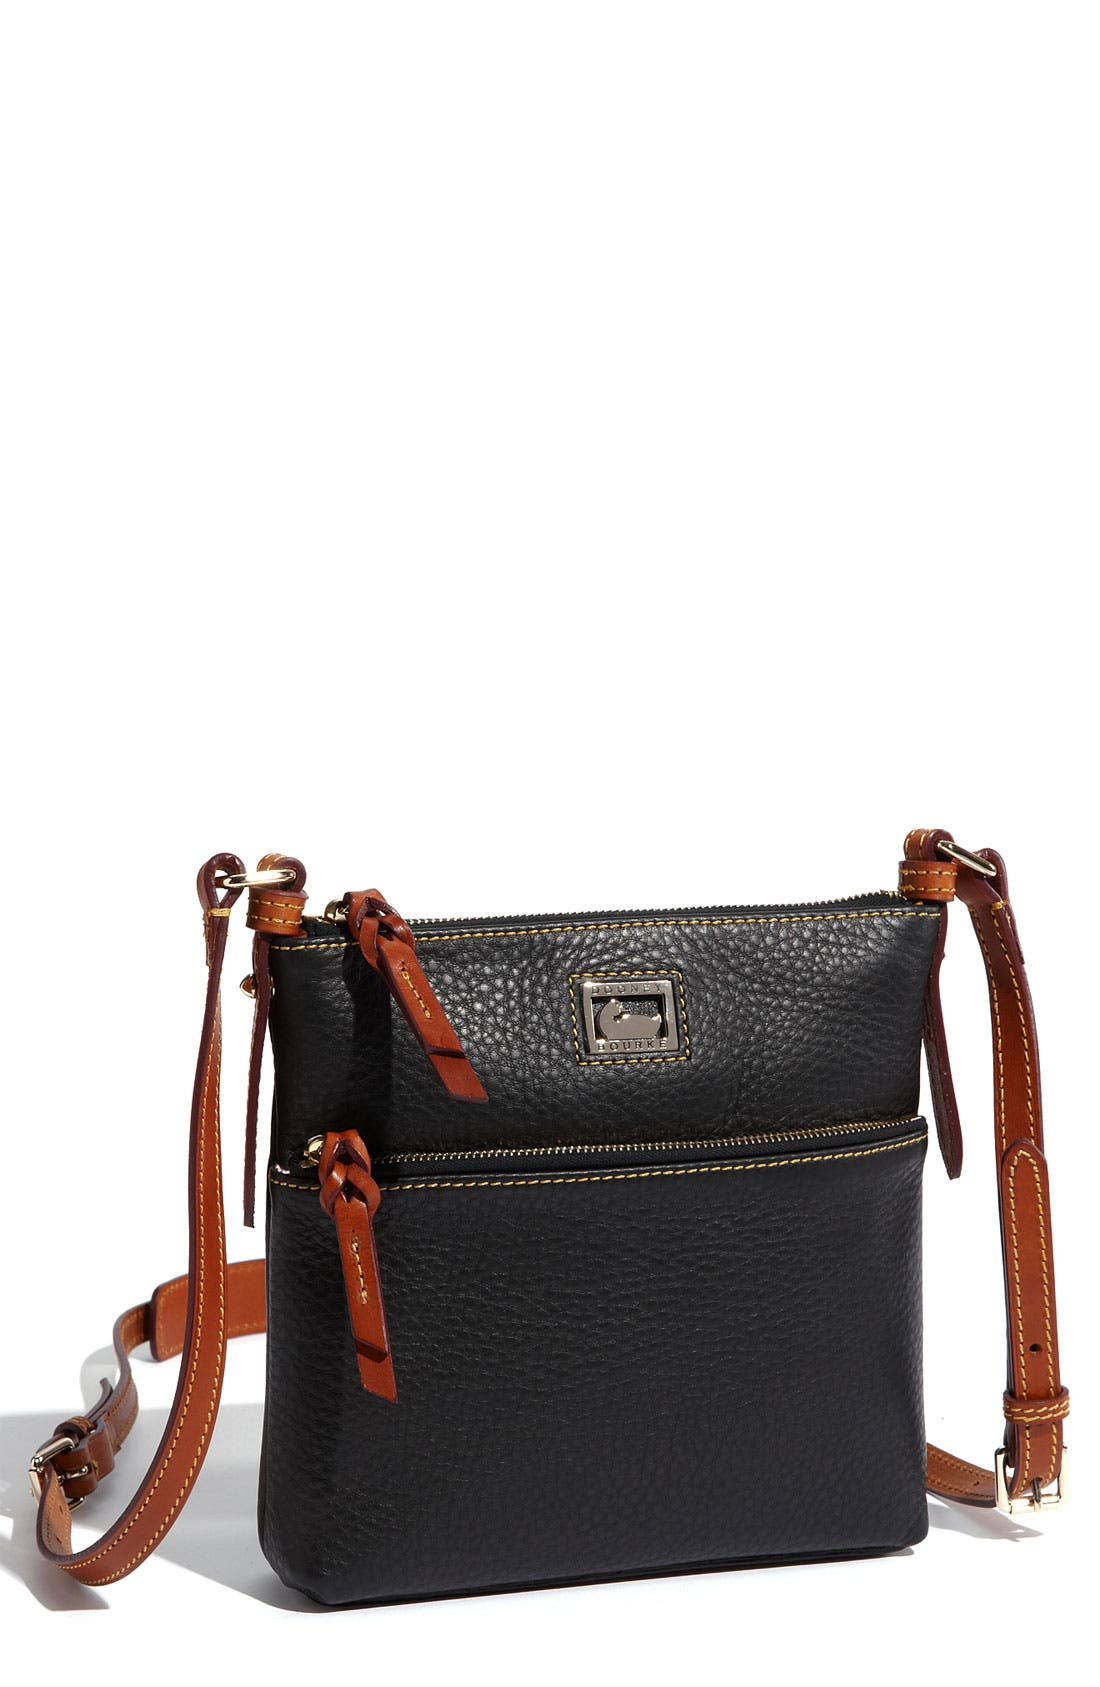 Main Image - Dooney & Bourke 'Dillen II Letter Carrier' Crossbody Bag (Online Only)